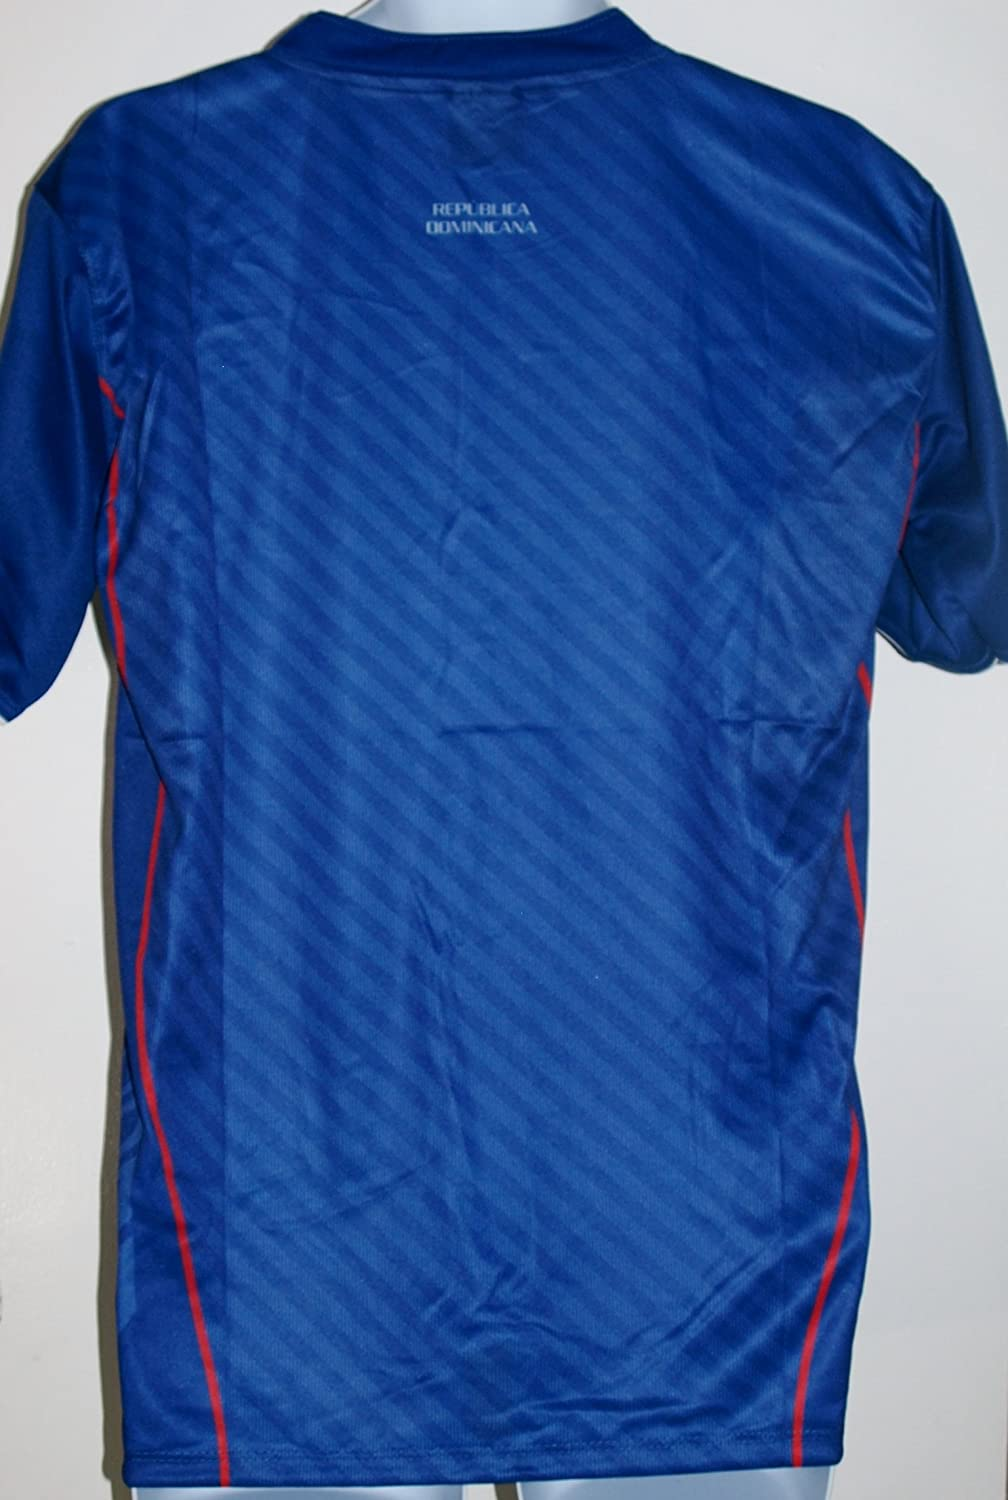 Amazon.com : DOMINICAN REPUBLIC SOCCER JERSEY T-SHIRT BLUE M MEDIUM FOOTBALL FIFA CAMISETA REMERA FÚTBOL REPÚBLICA DOMINICANA : Sports & Outdoors